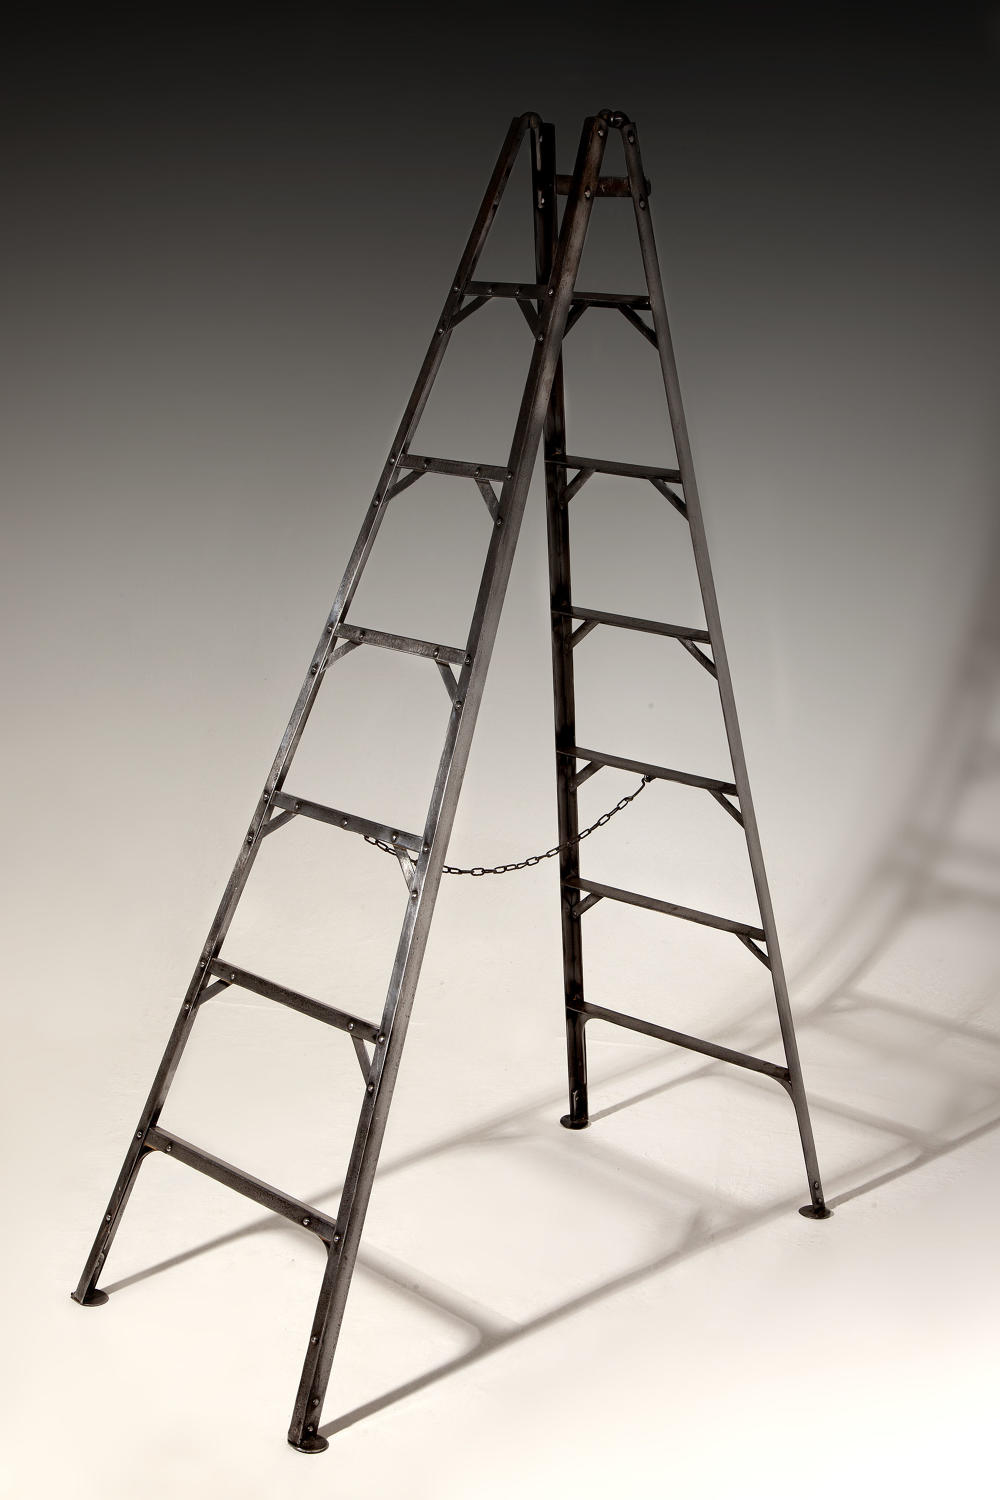 A rare set of early 19th century pruning/library ladders